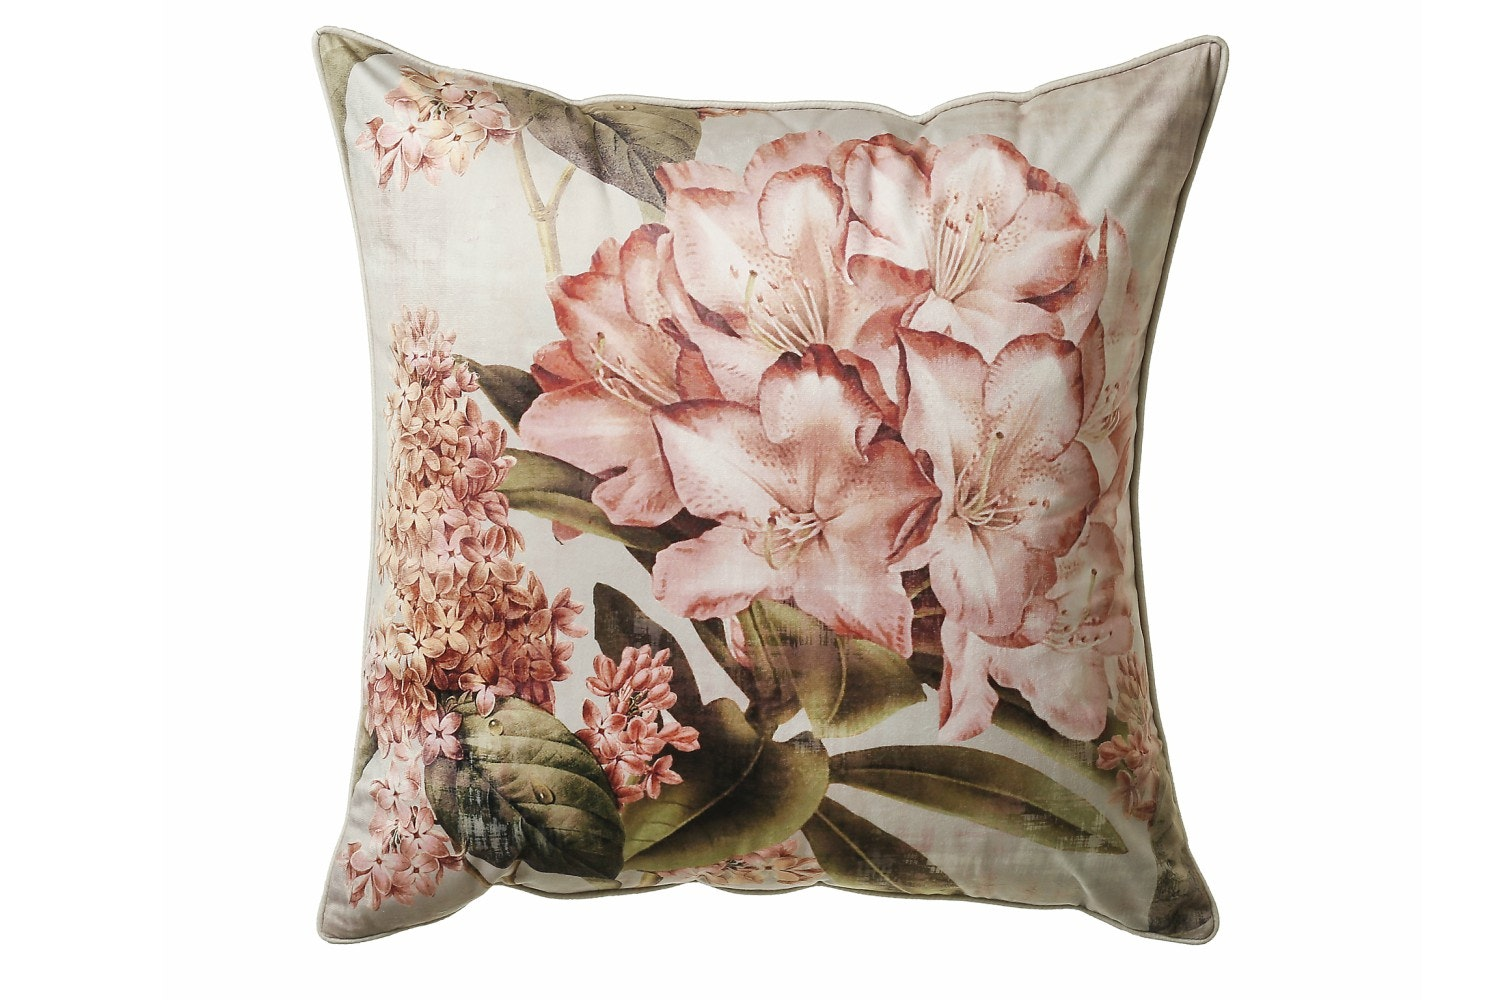 Scatterbox Botanical Blush Peach Cushion | 45X45cm